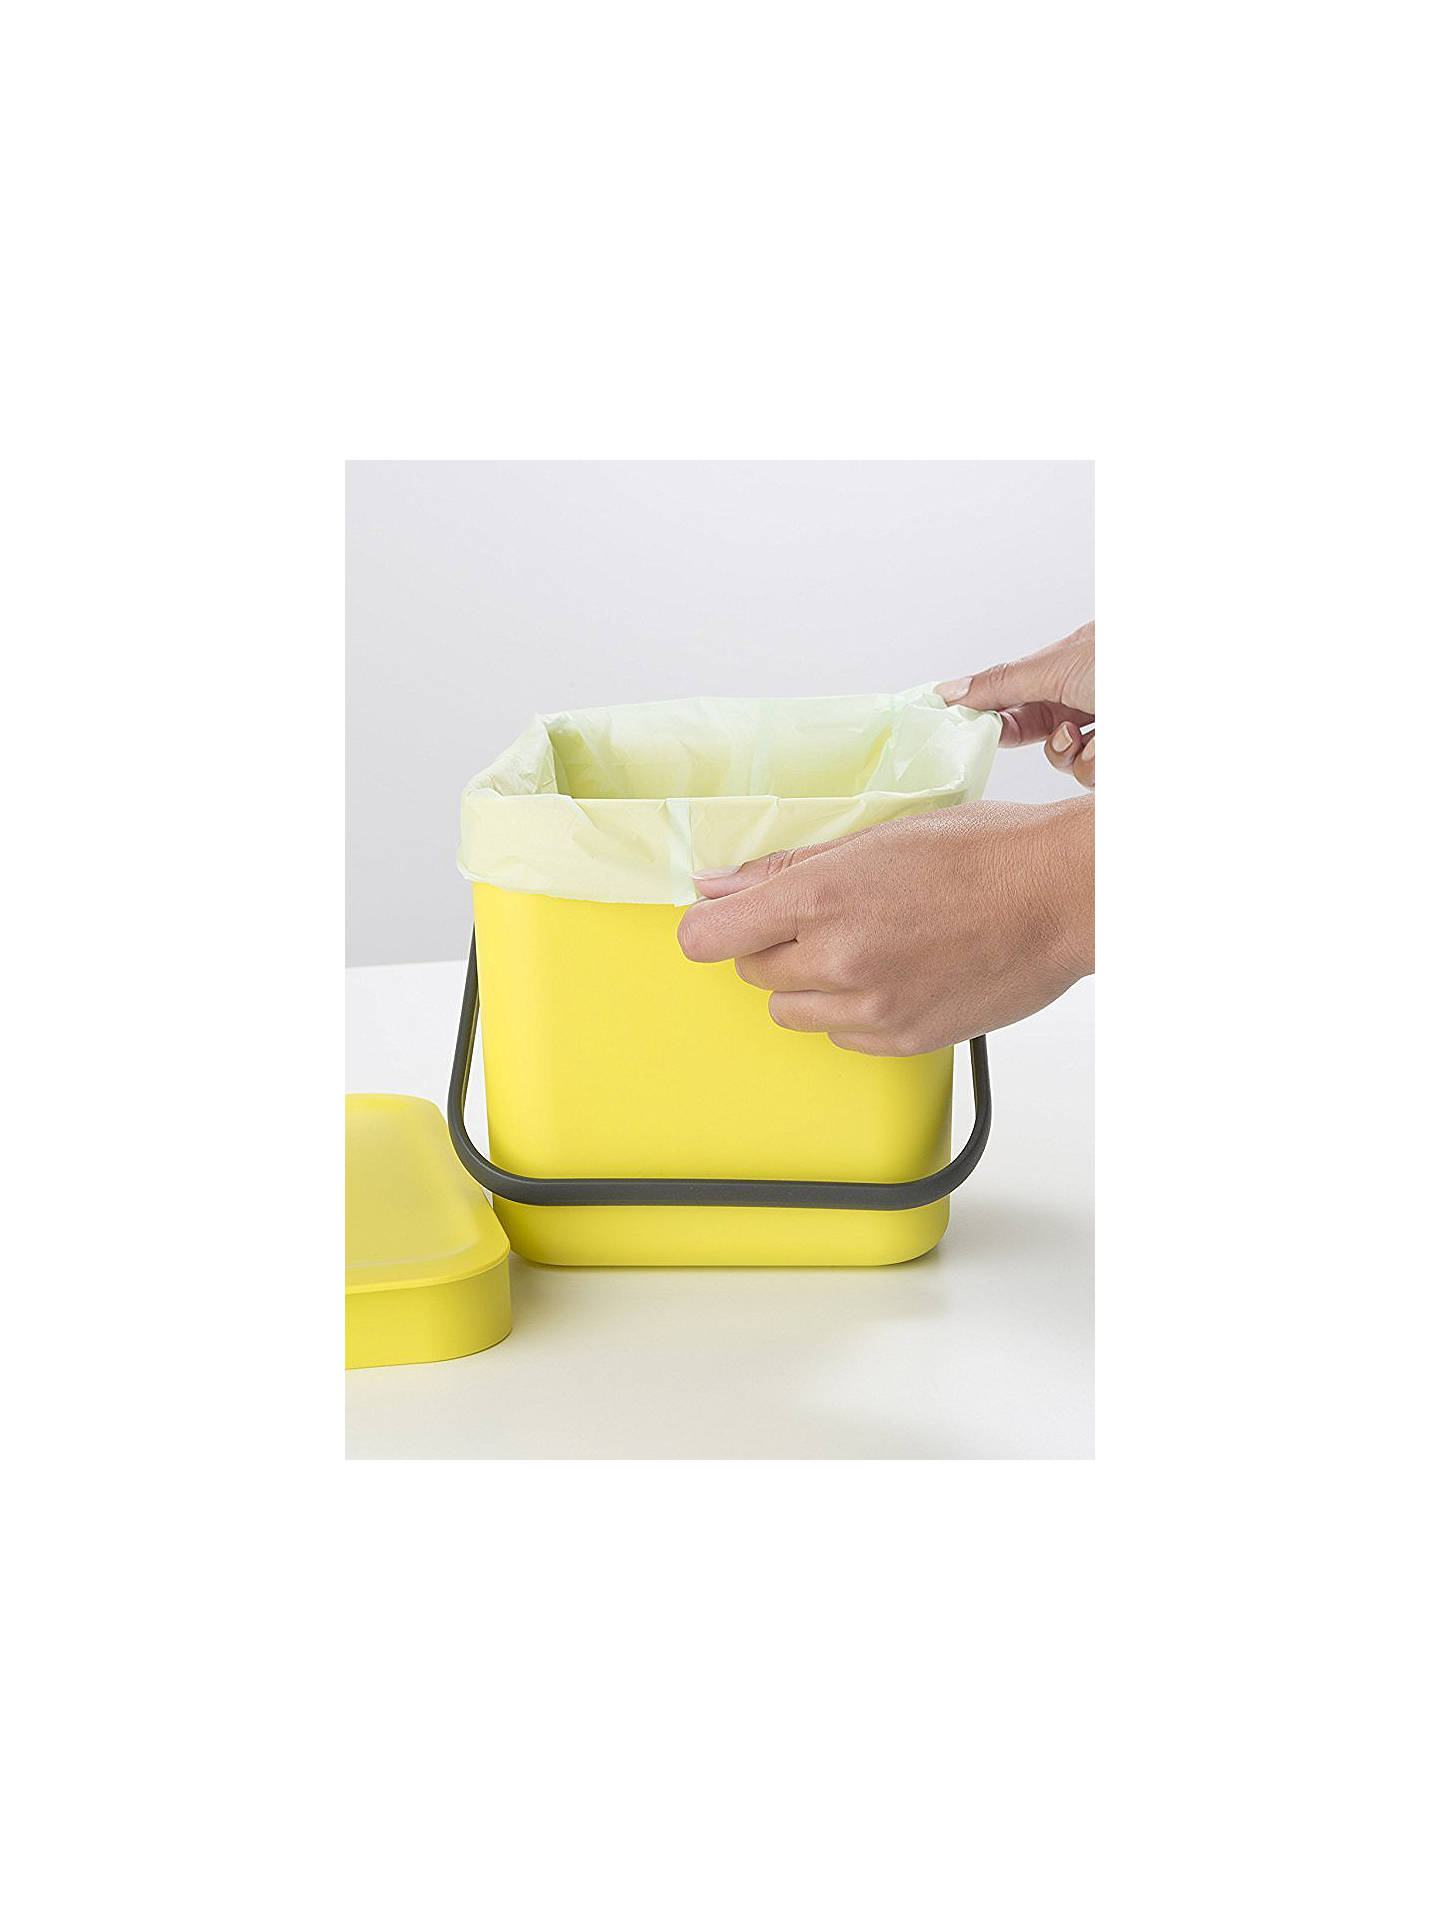 Buy Brabantia Compostable Bin Liners, 6L - Size S, 10 Bags Online at johnlewis.com